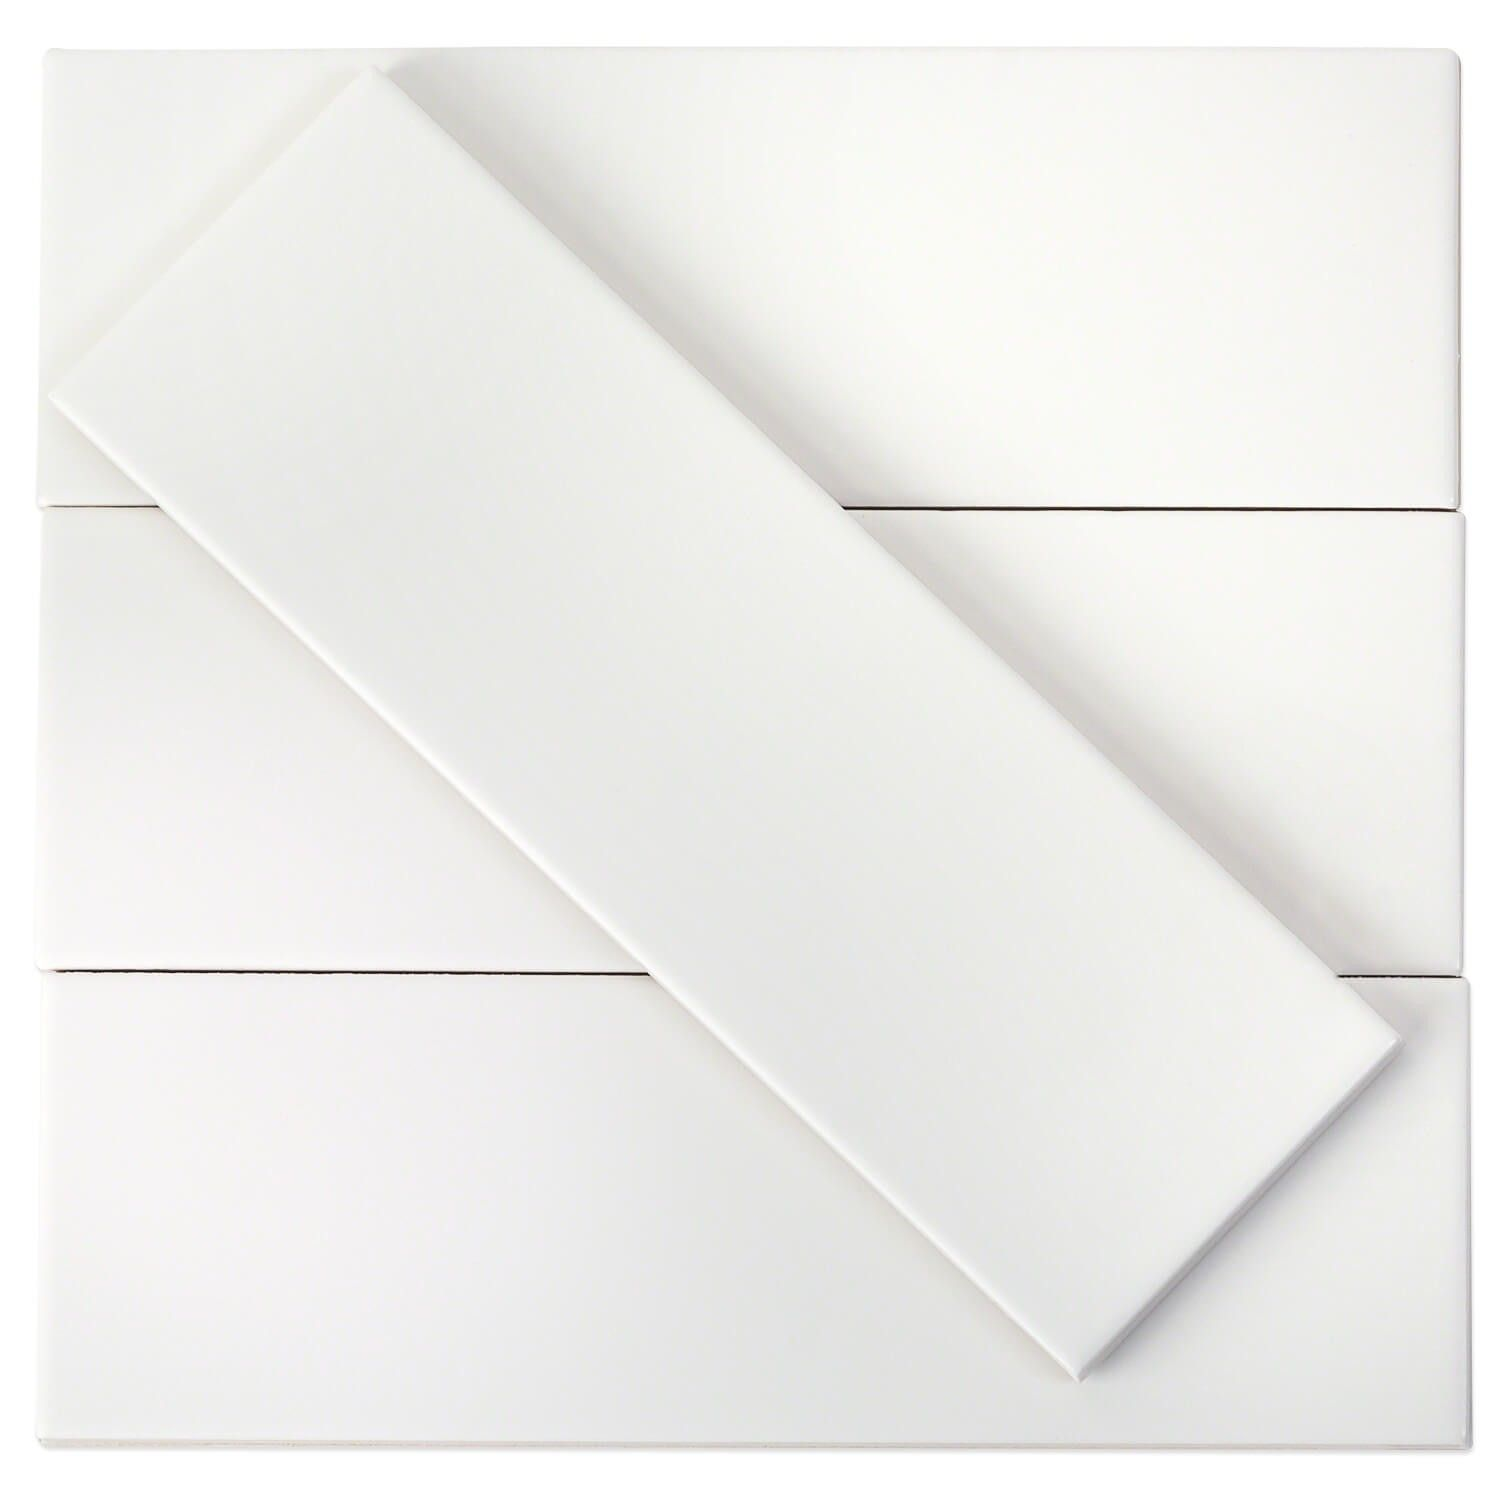 London White 3x9 Ceramic Tile Subway Tile Ceramic Subway Tile Ceramic Wall Tiles